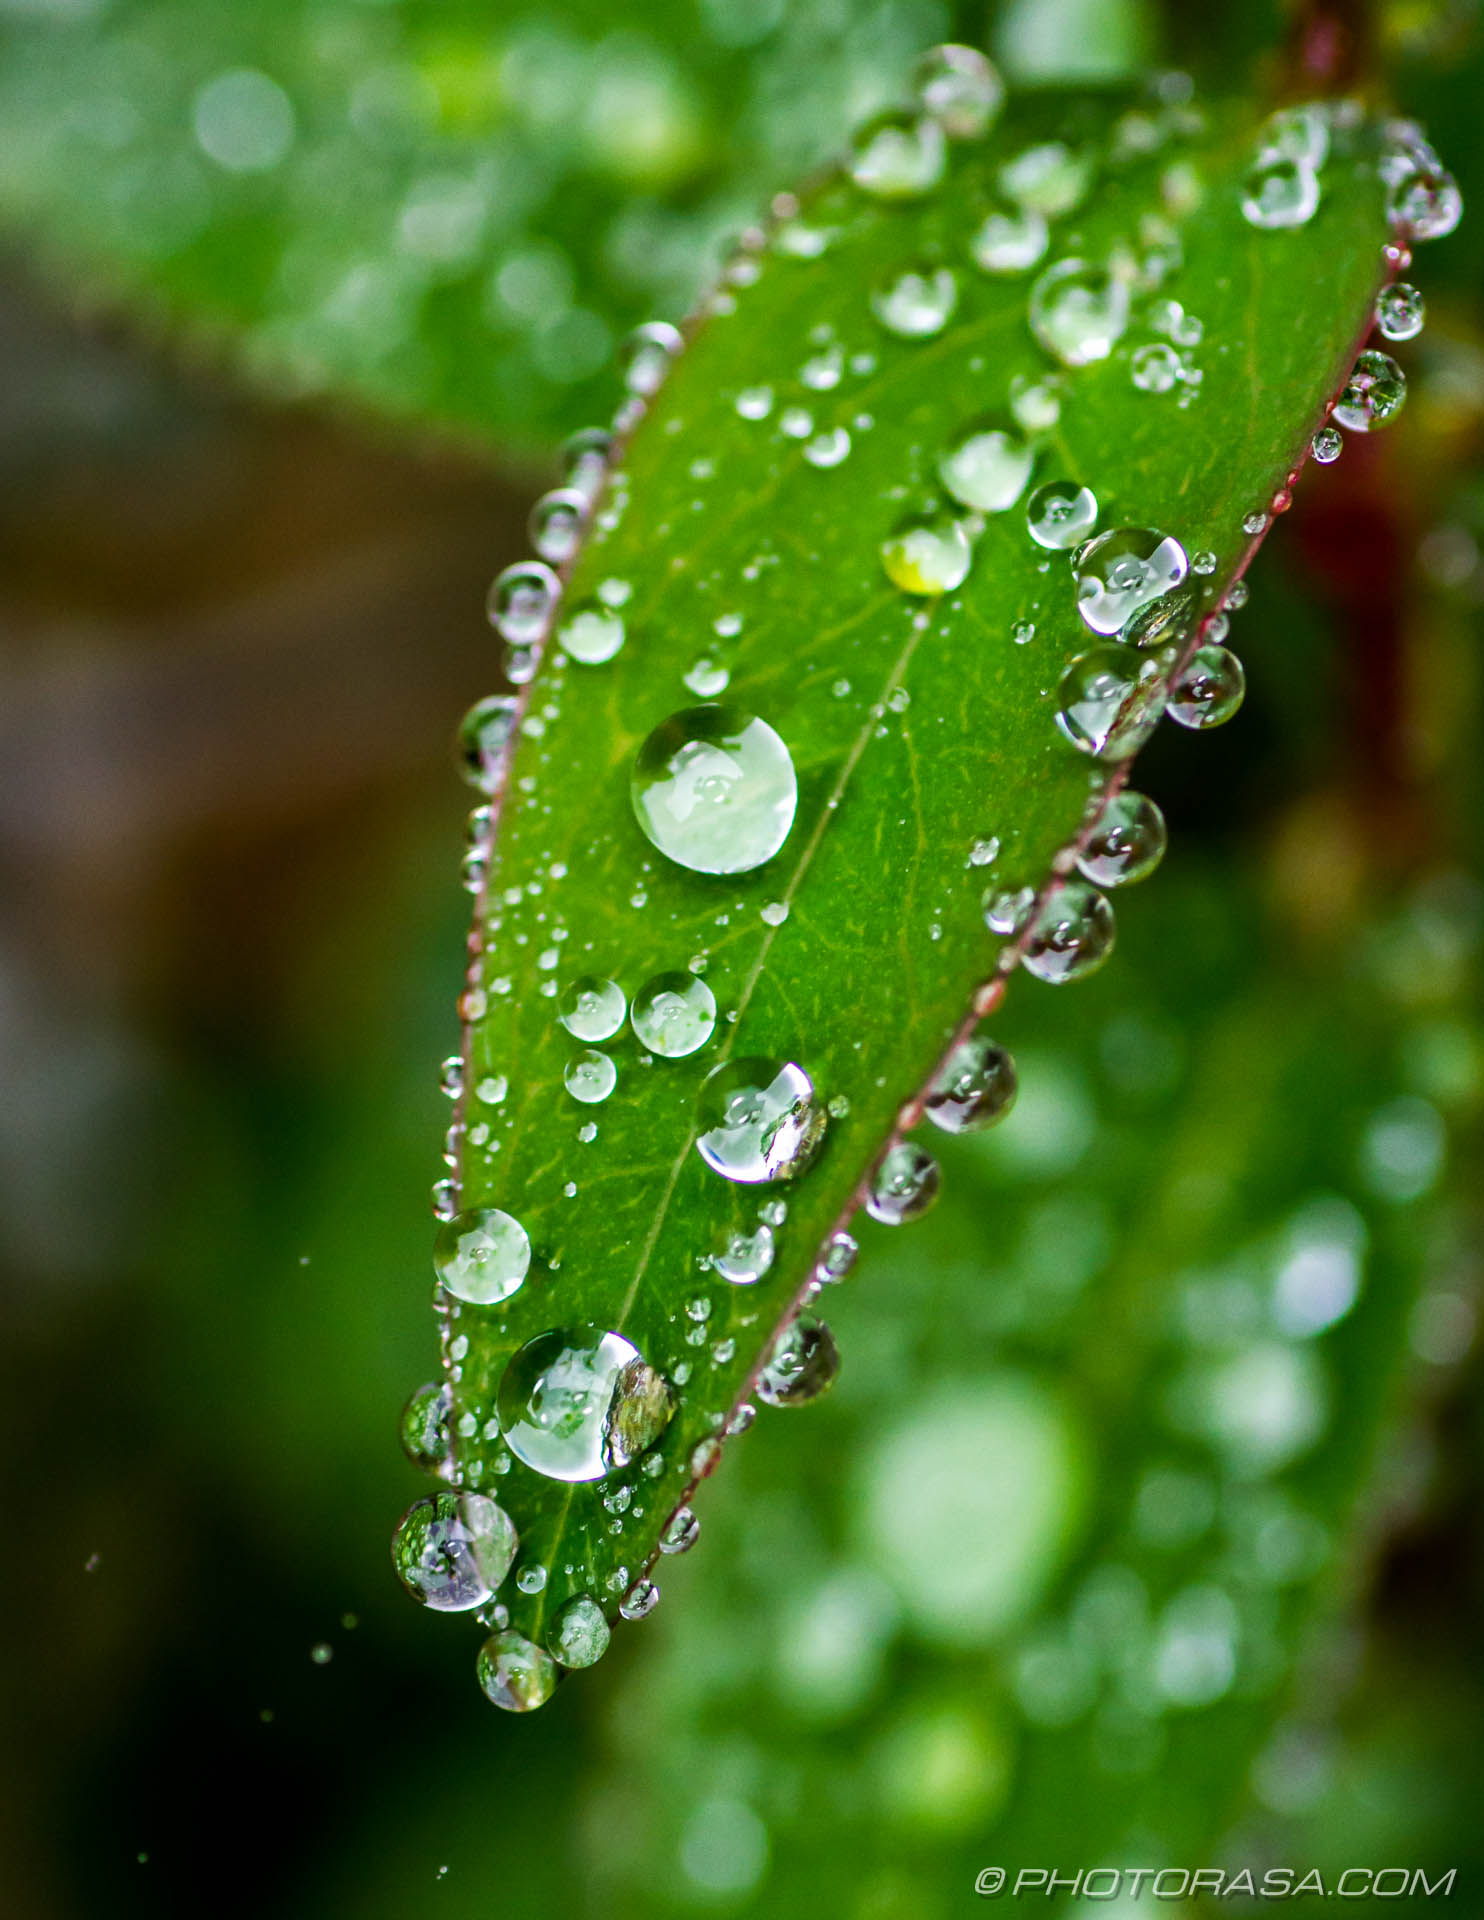 http://photorasa.com/nature/dewdrops-tiny-leaves/attachment/tiny-water-droplets-on-small-leaf/